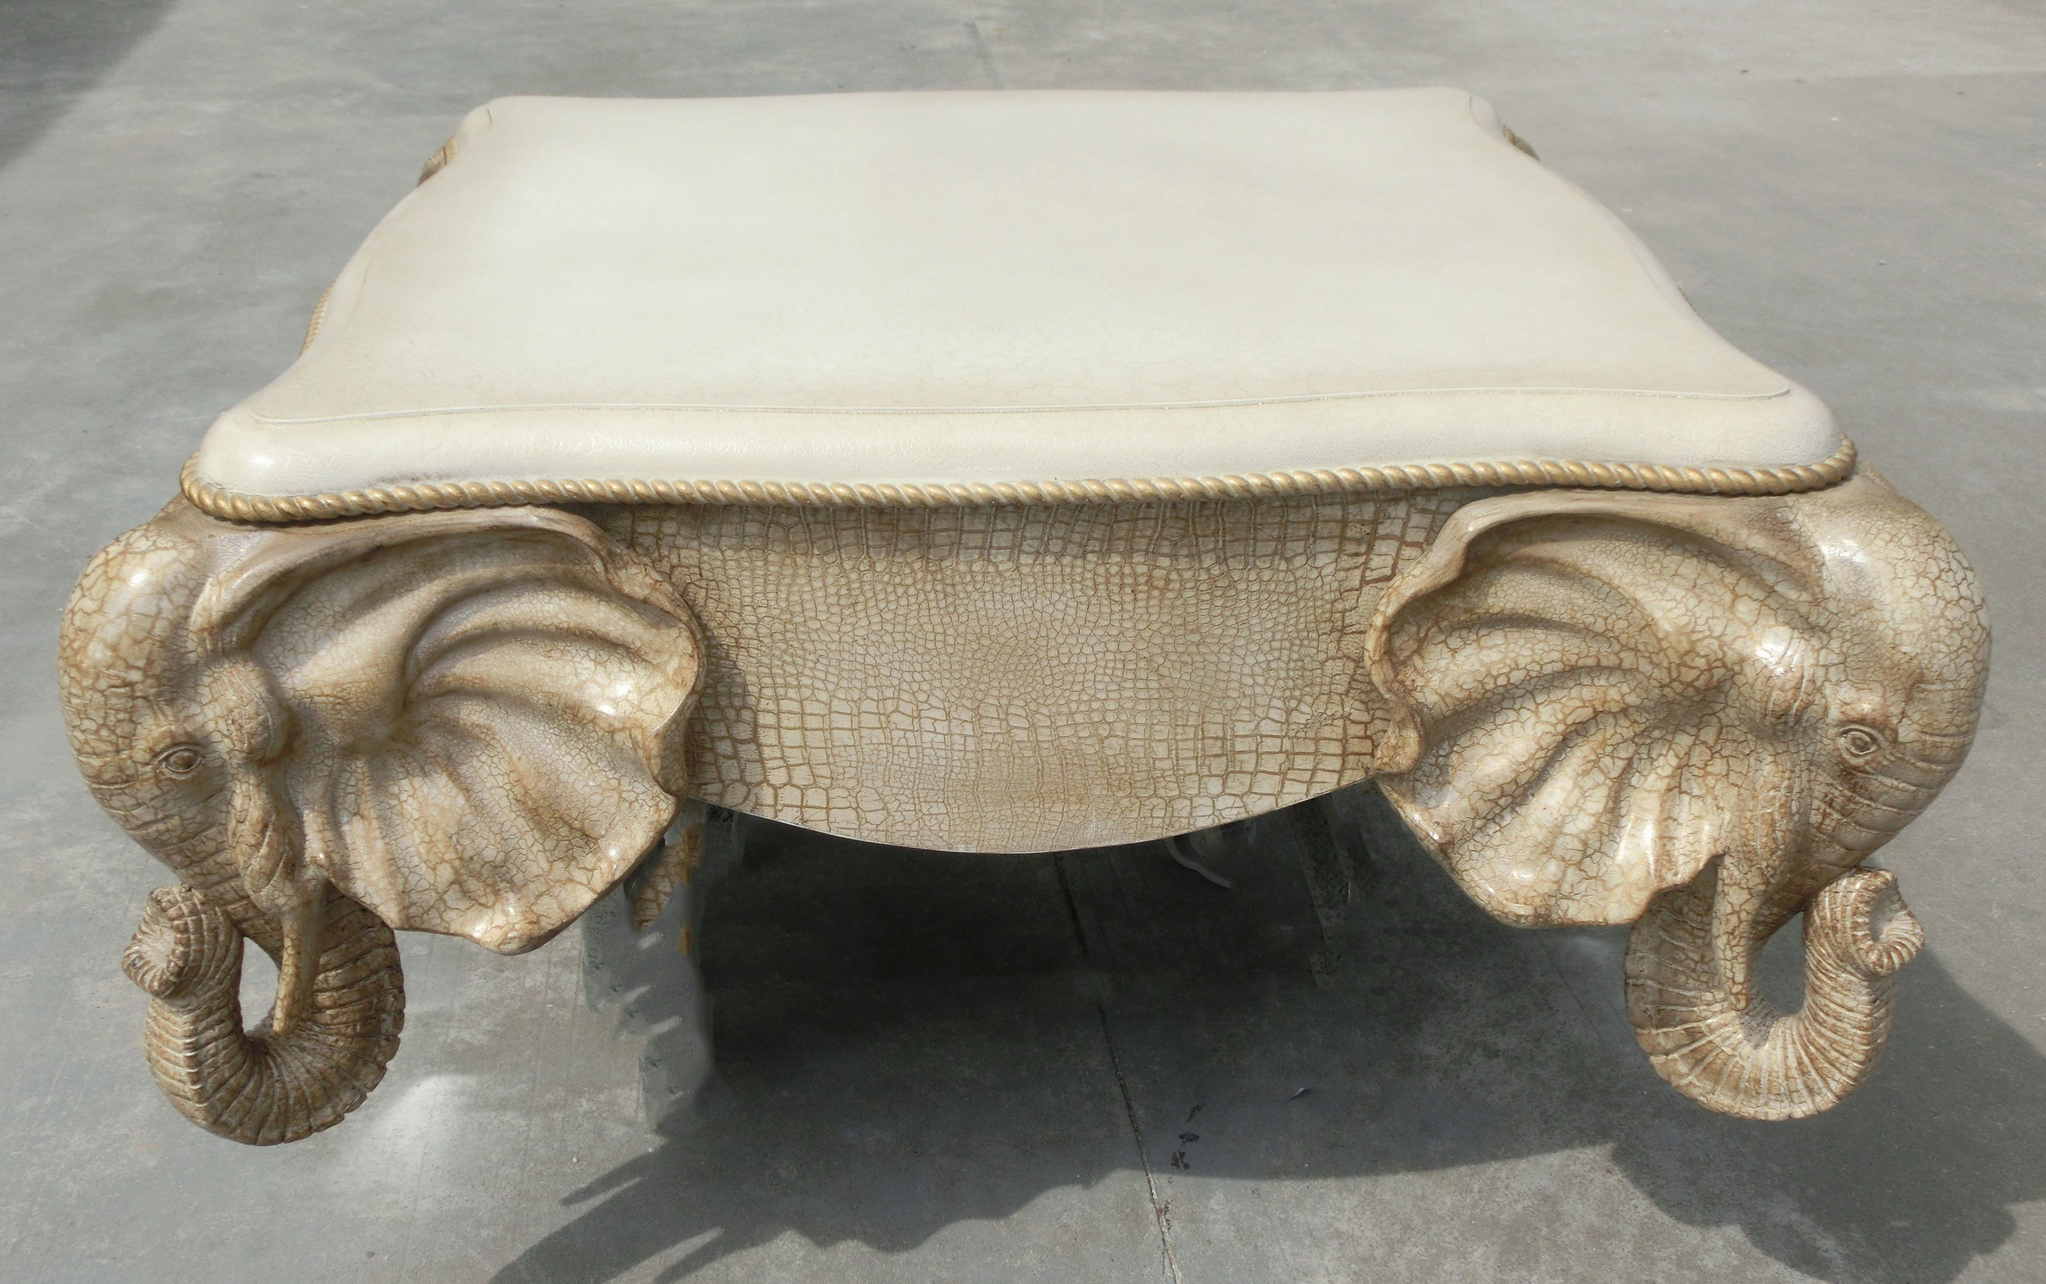 Elephant coffee table winston sahd Elephant coffee table